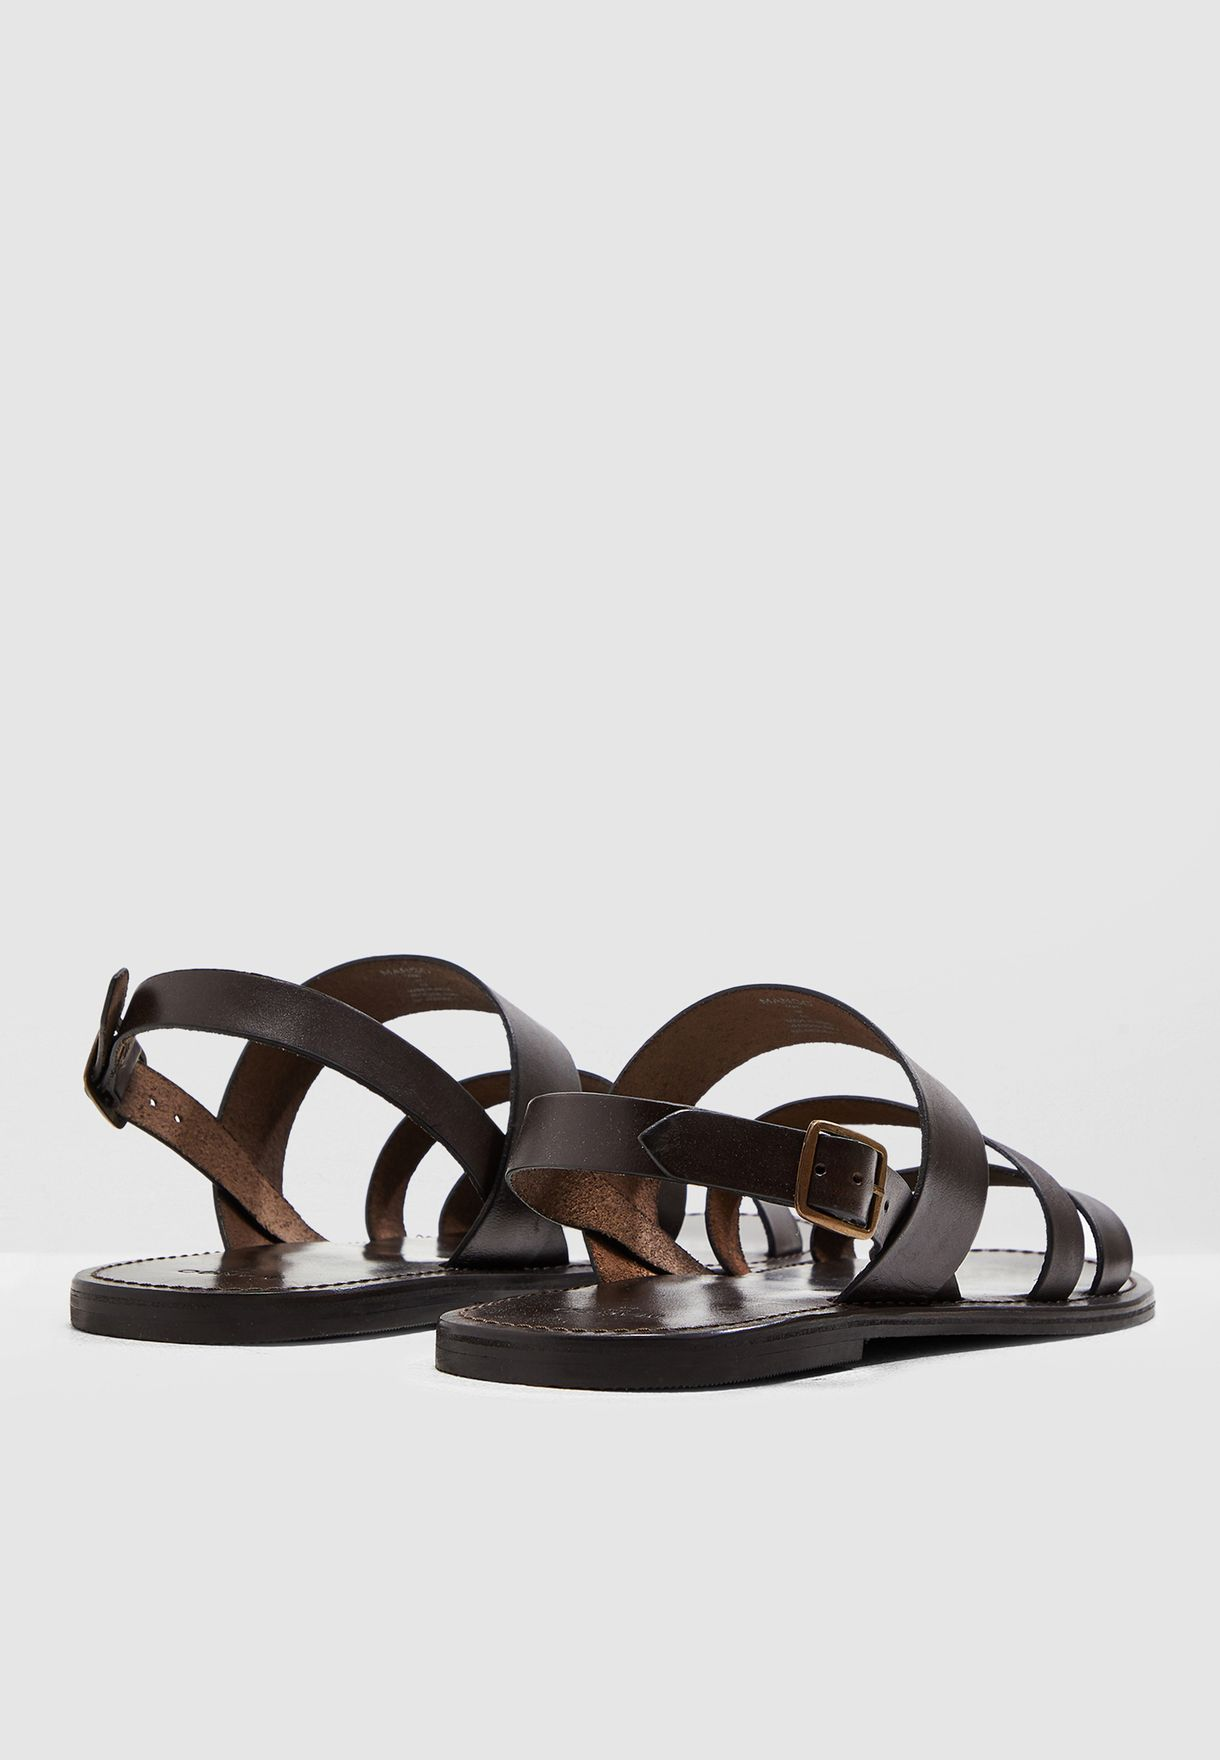 Triple Strap Leather Sandals